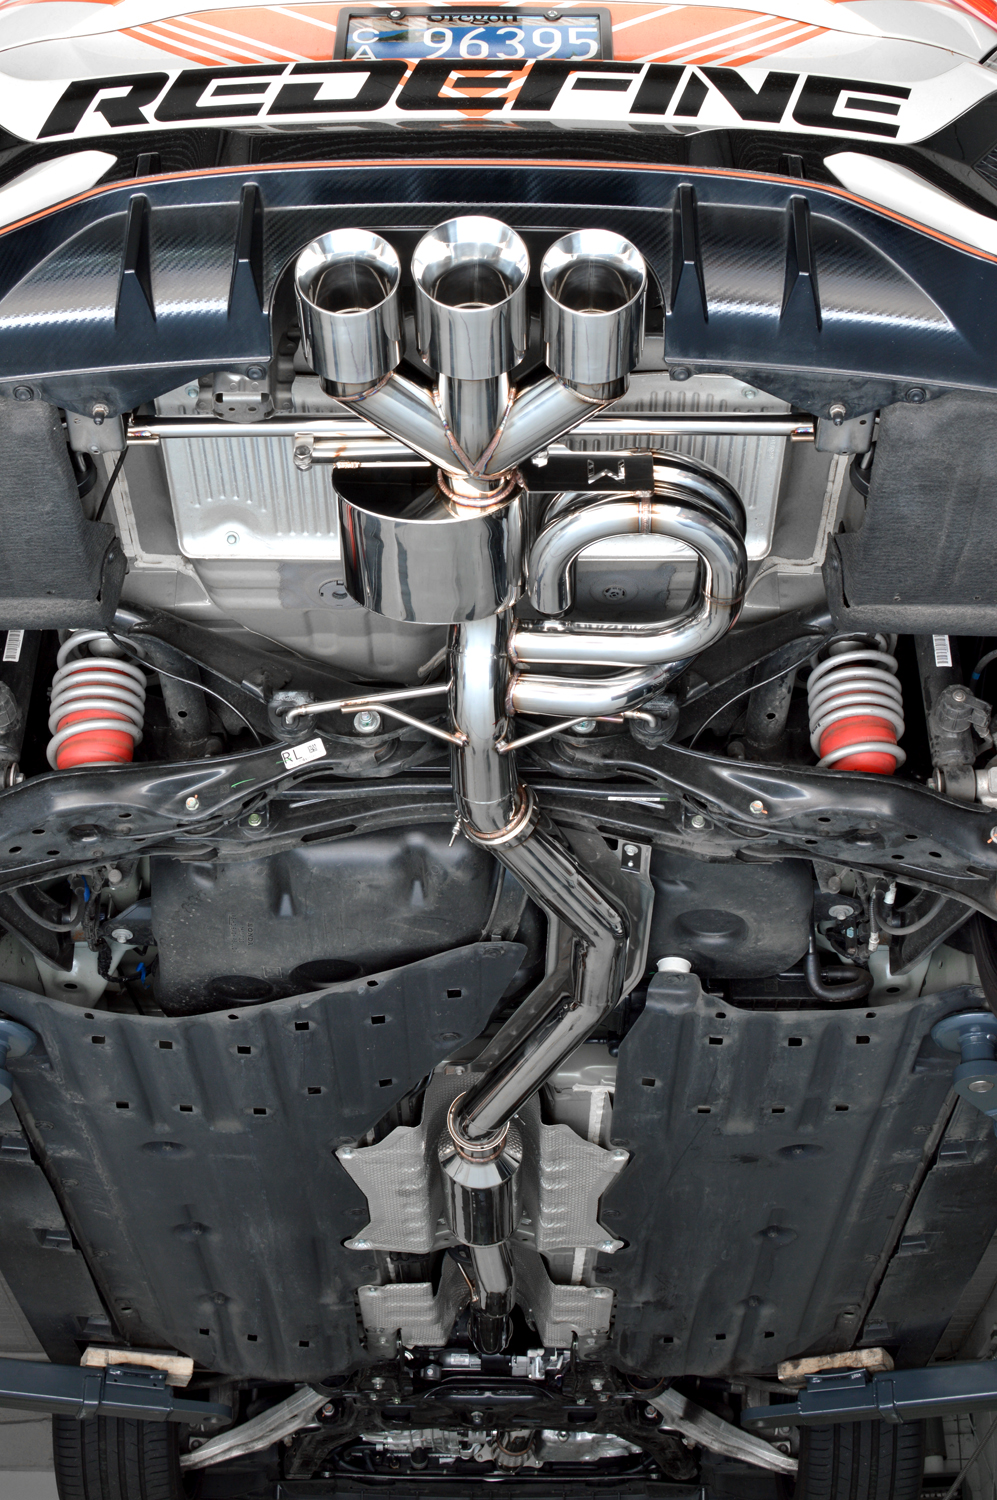 The largest Type R exhaust on the market. 80mm from end to end, no step downs. Even comes with a front-pipe.